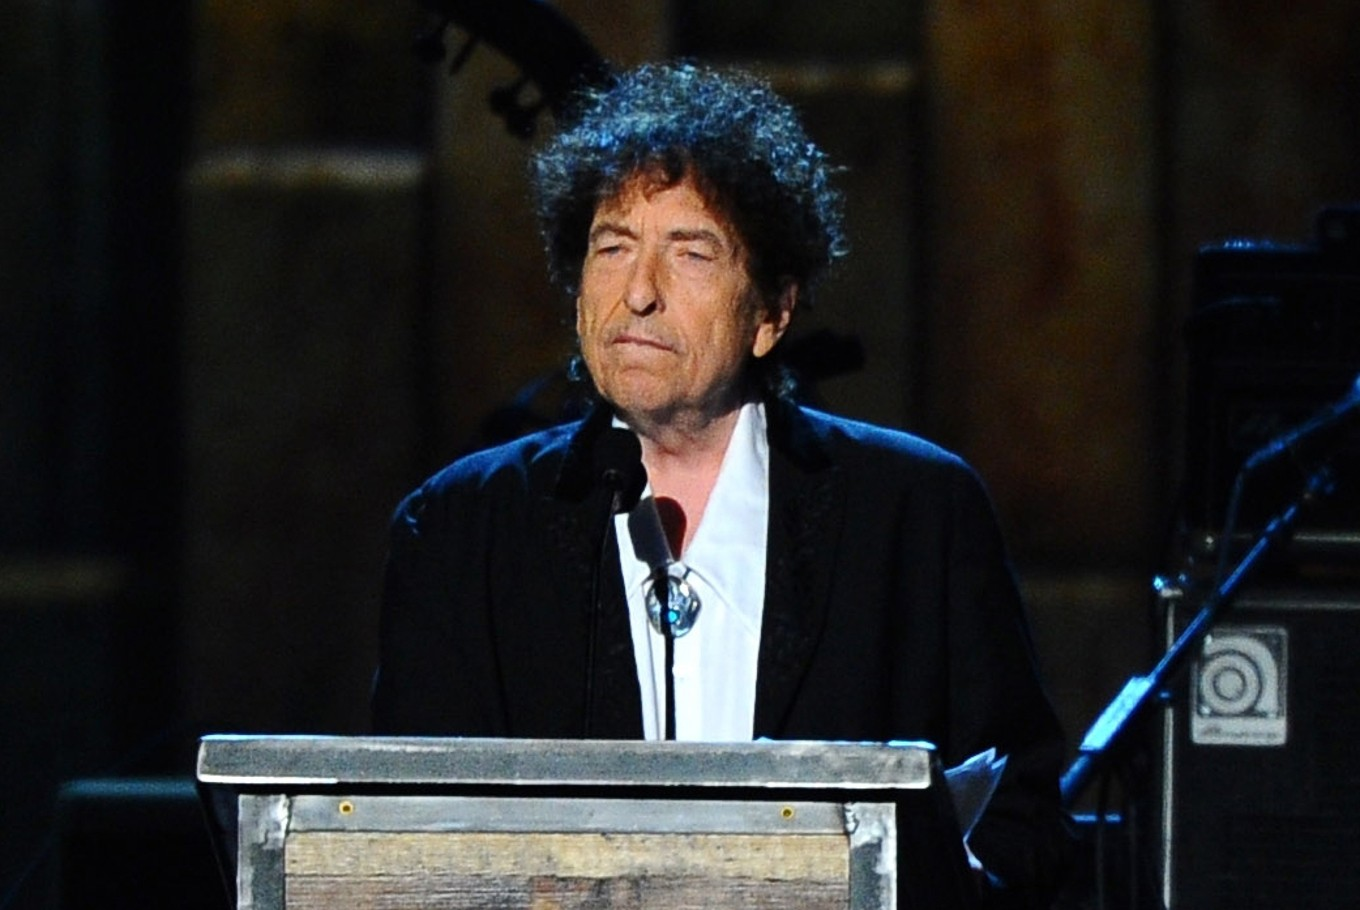 Bob Dylan drops 17-minute song inspired by Kennedy assassination